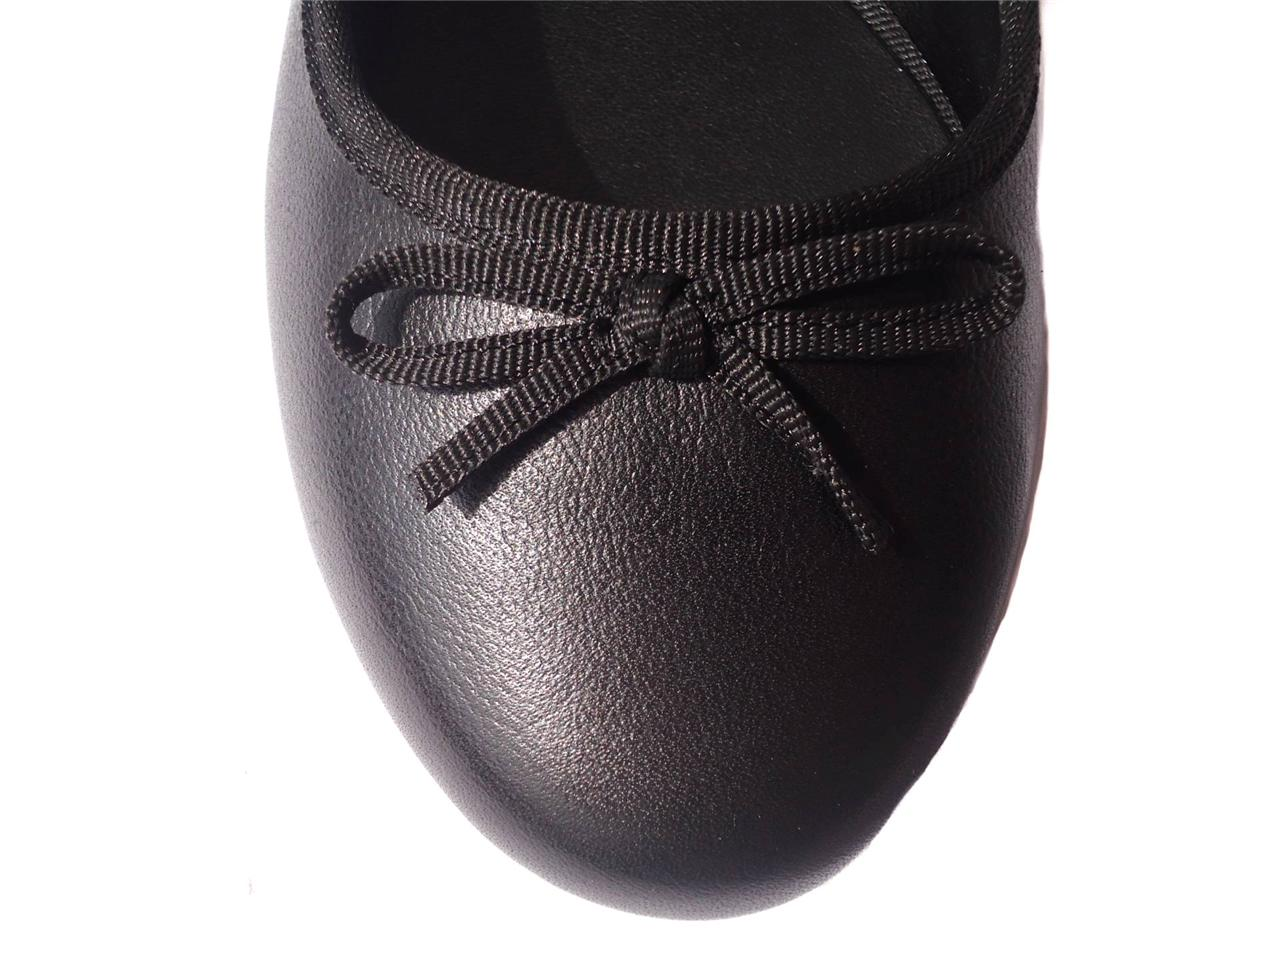 New-Women-Ladies-Diana-Ferrari-Leather-Shoe-Work-Flat-Black-Size-6-7-8-9-10-11